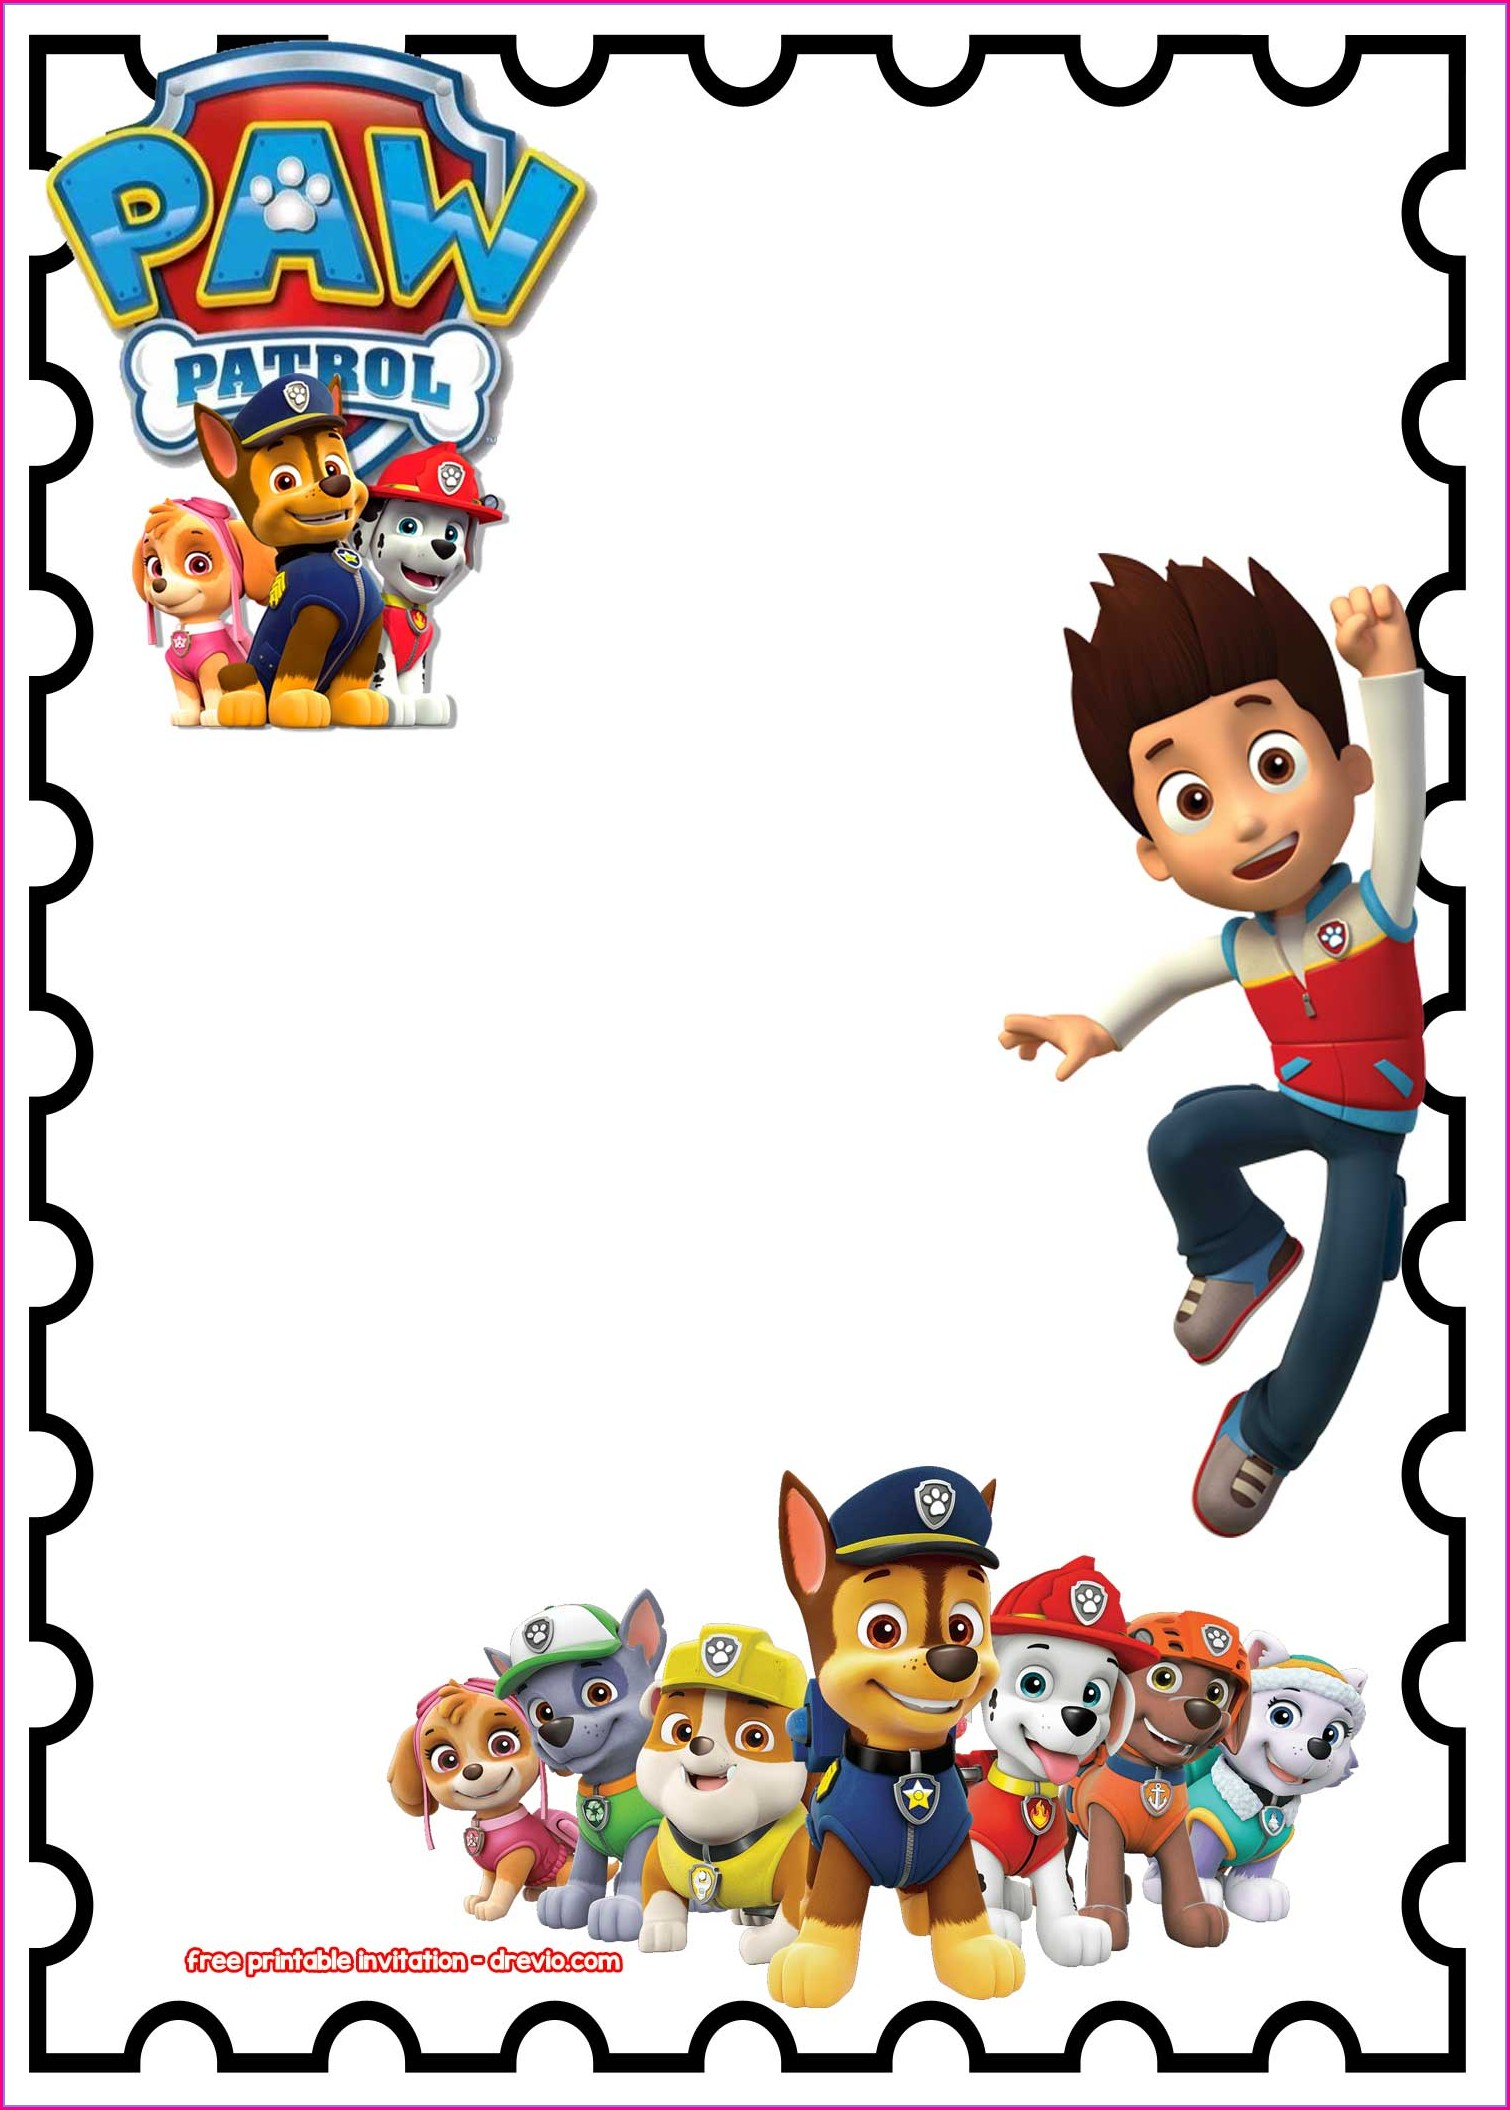 Paw Patrol Invitation Template Free Editable